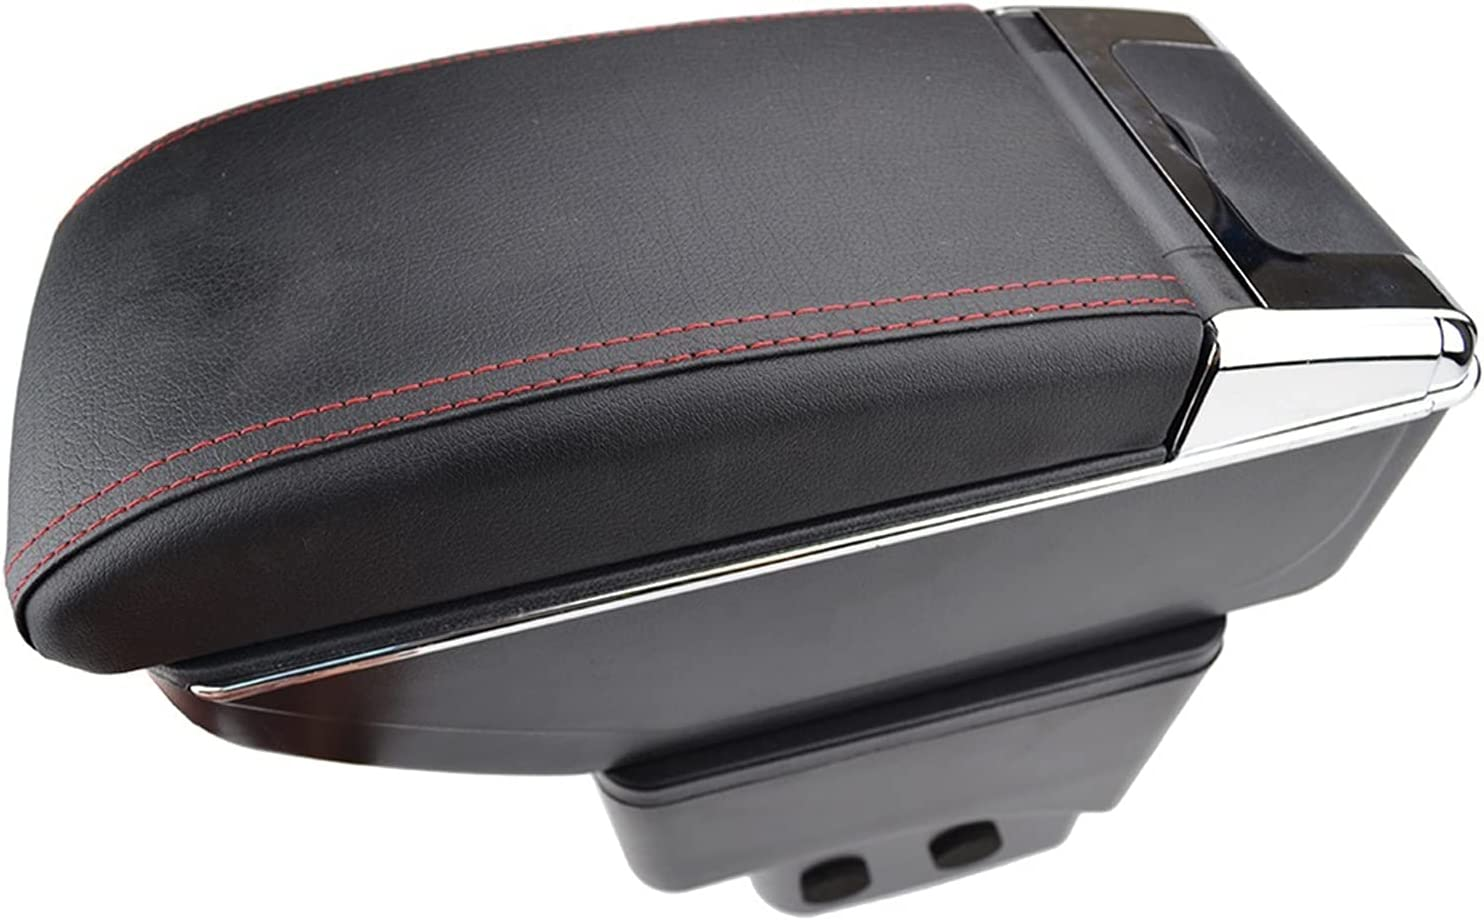 HDBH Storage Box Center Max 84% OFF Console Leather 2013-201 Double-Layer San Francisco Mall PU